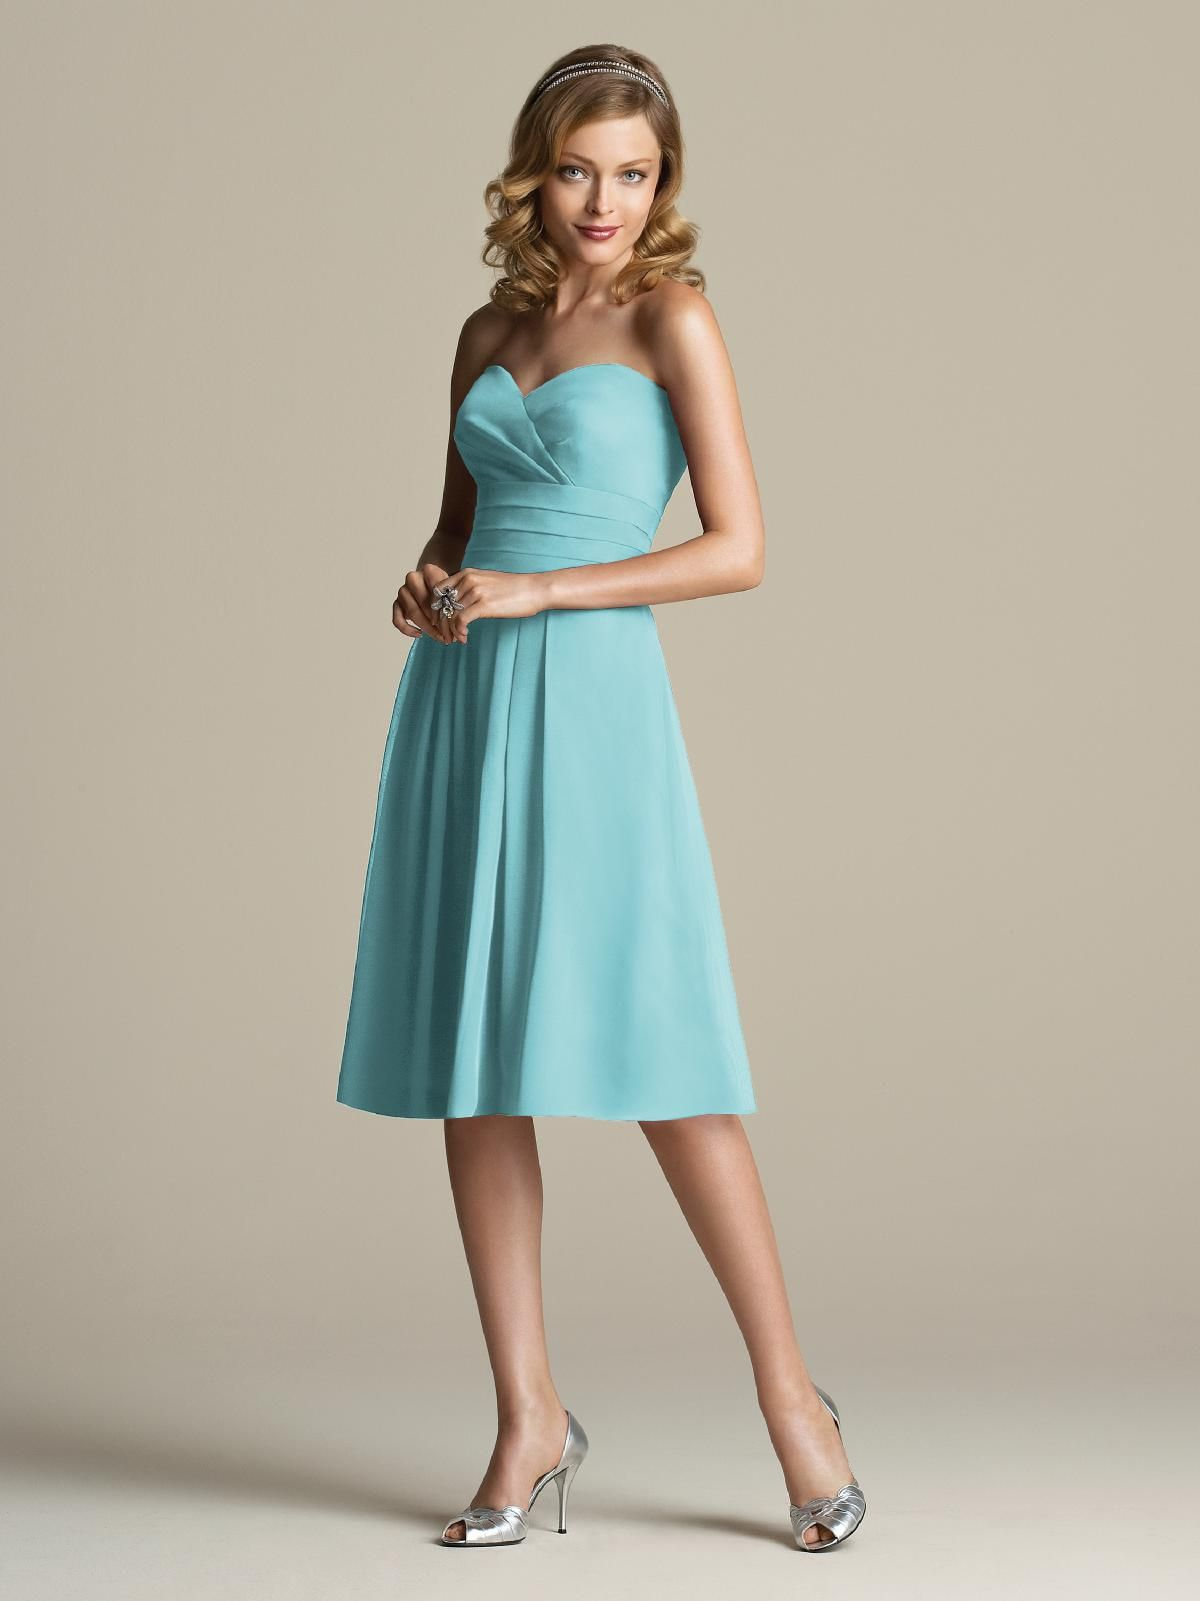 Meg\'s wedding - not sure if you have decided on colors, but this ...